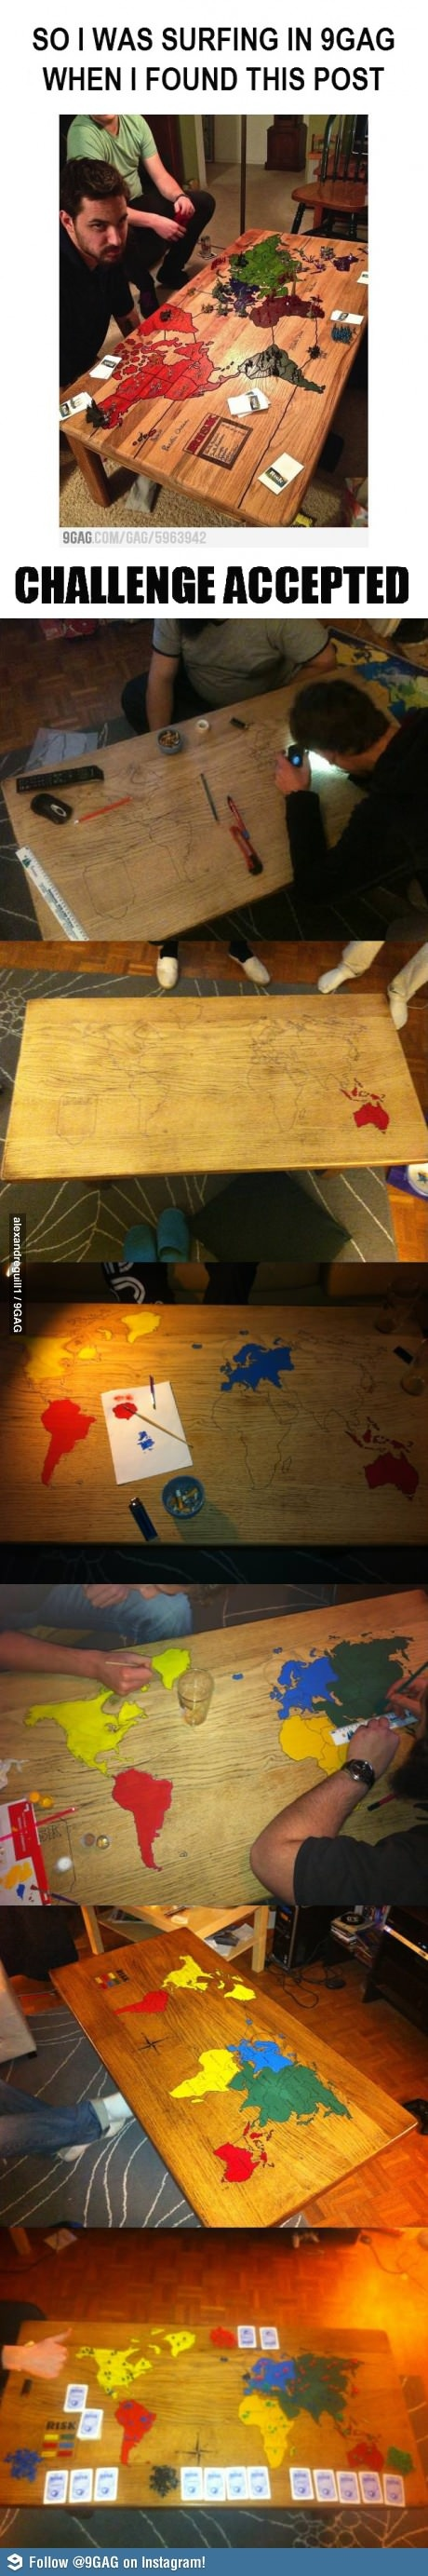 Great idea for a table, even if you don't like boardgames.